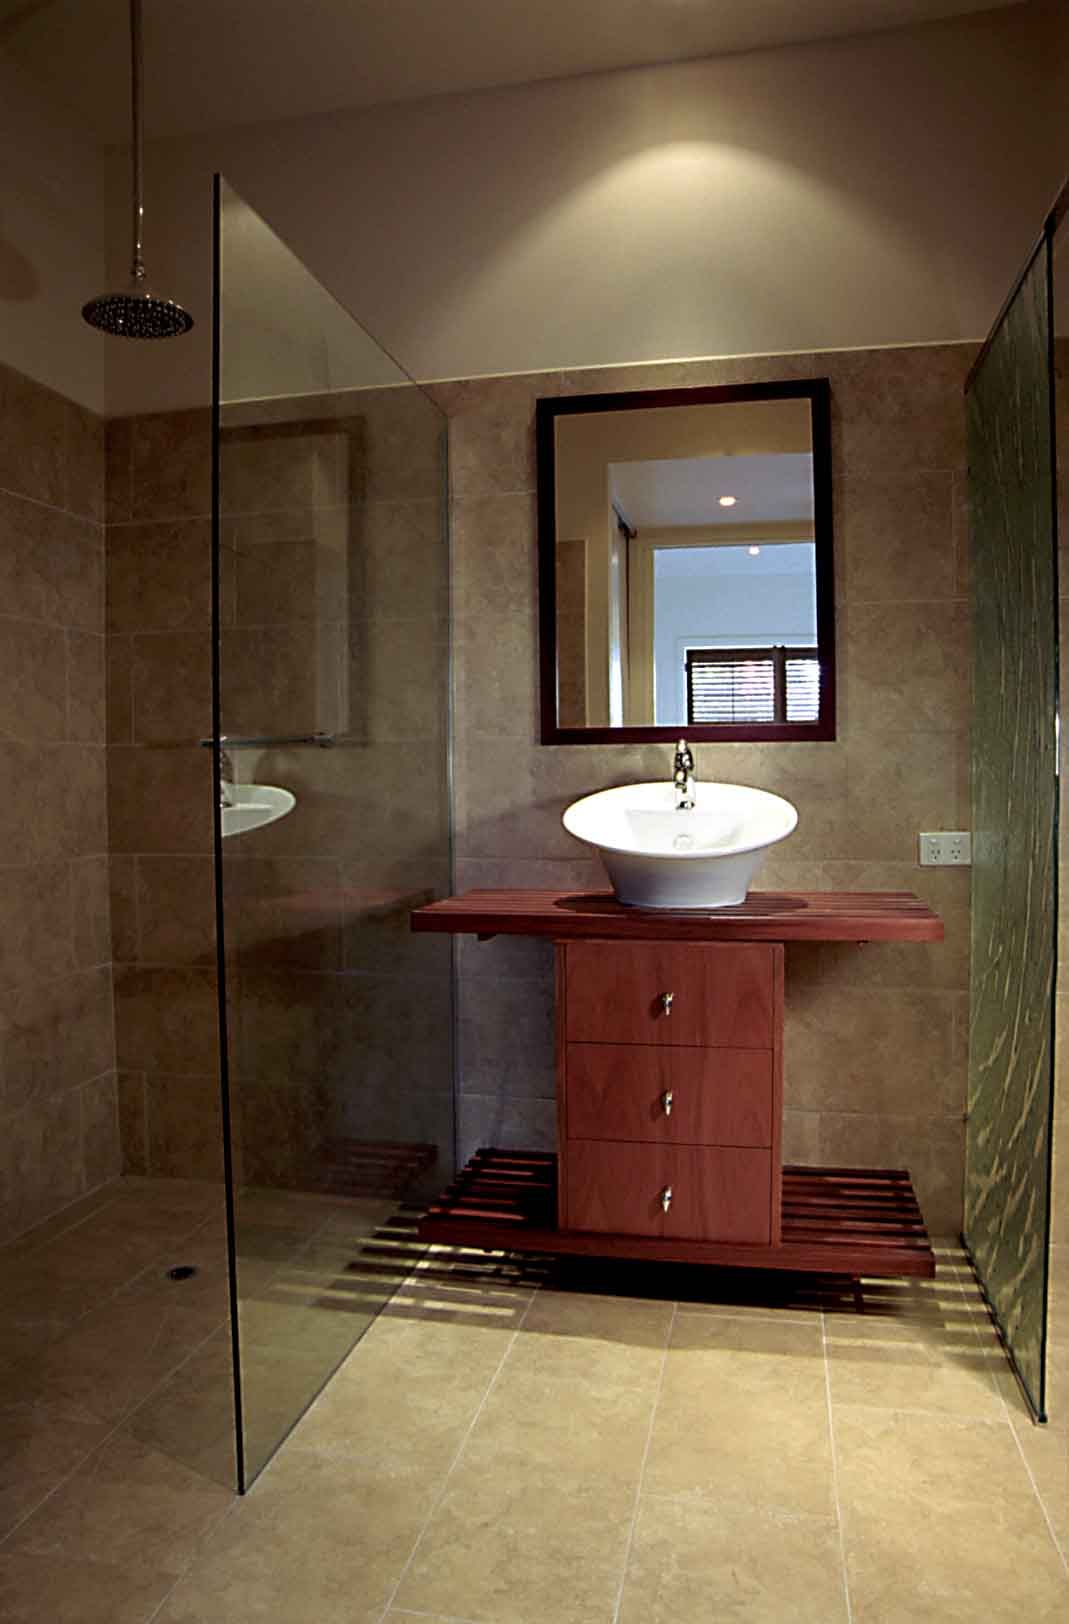 Wet room design for small bathrooms small ensuite for Small restroom ideas